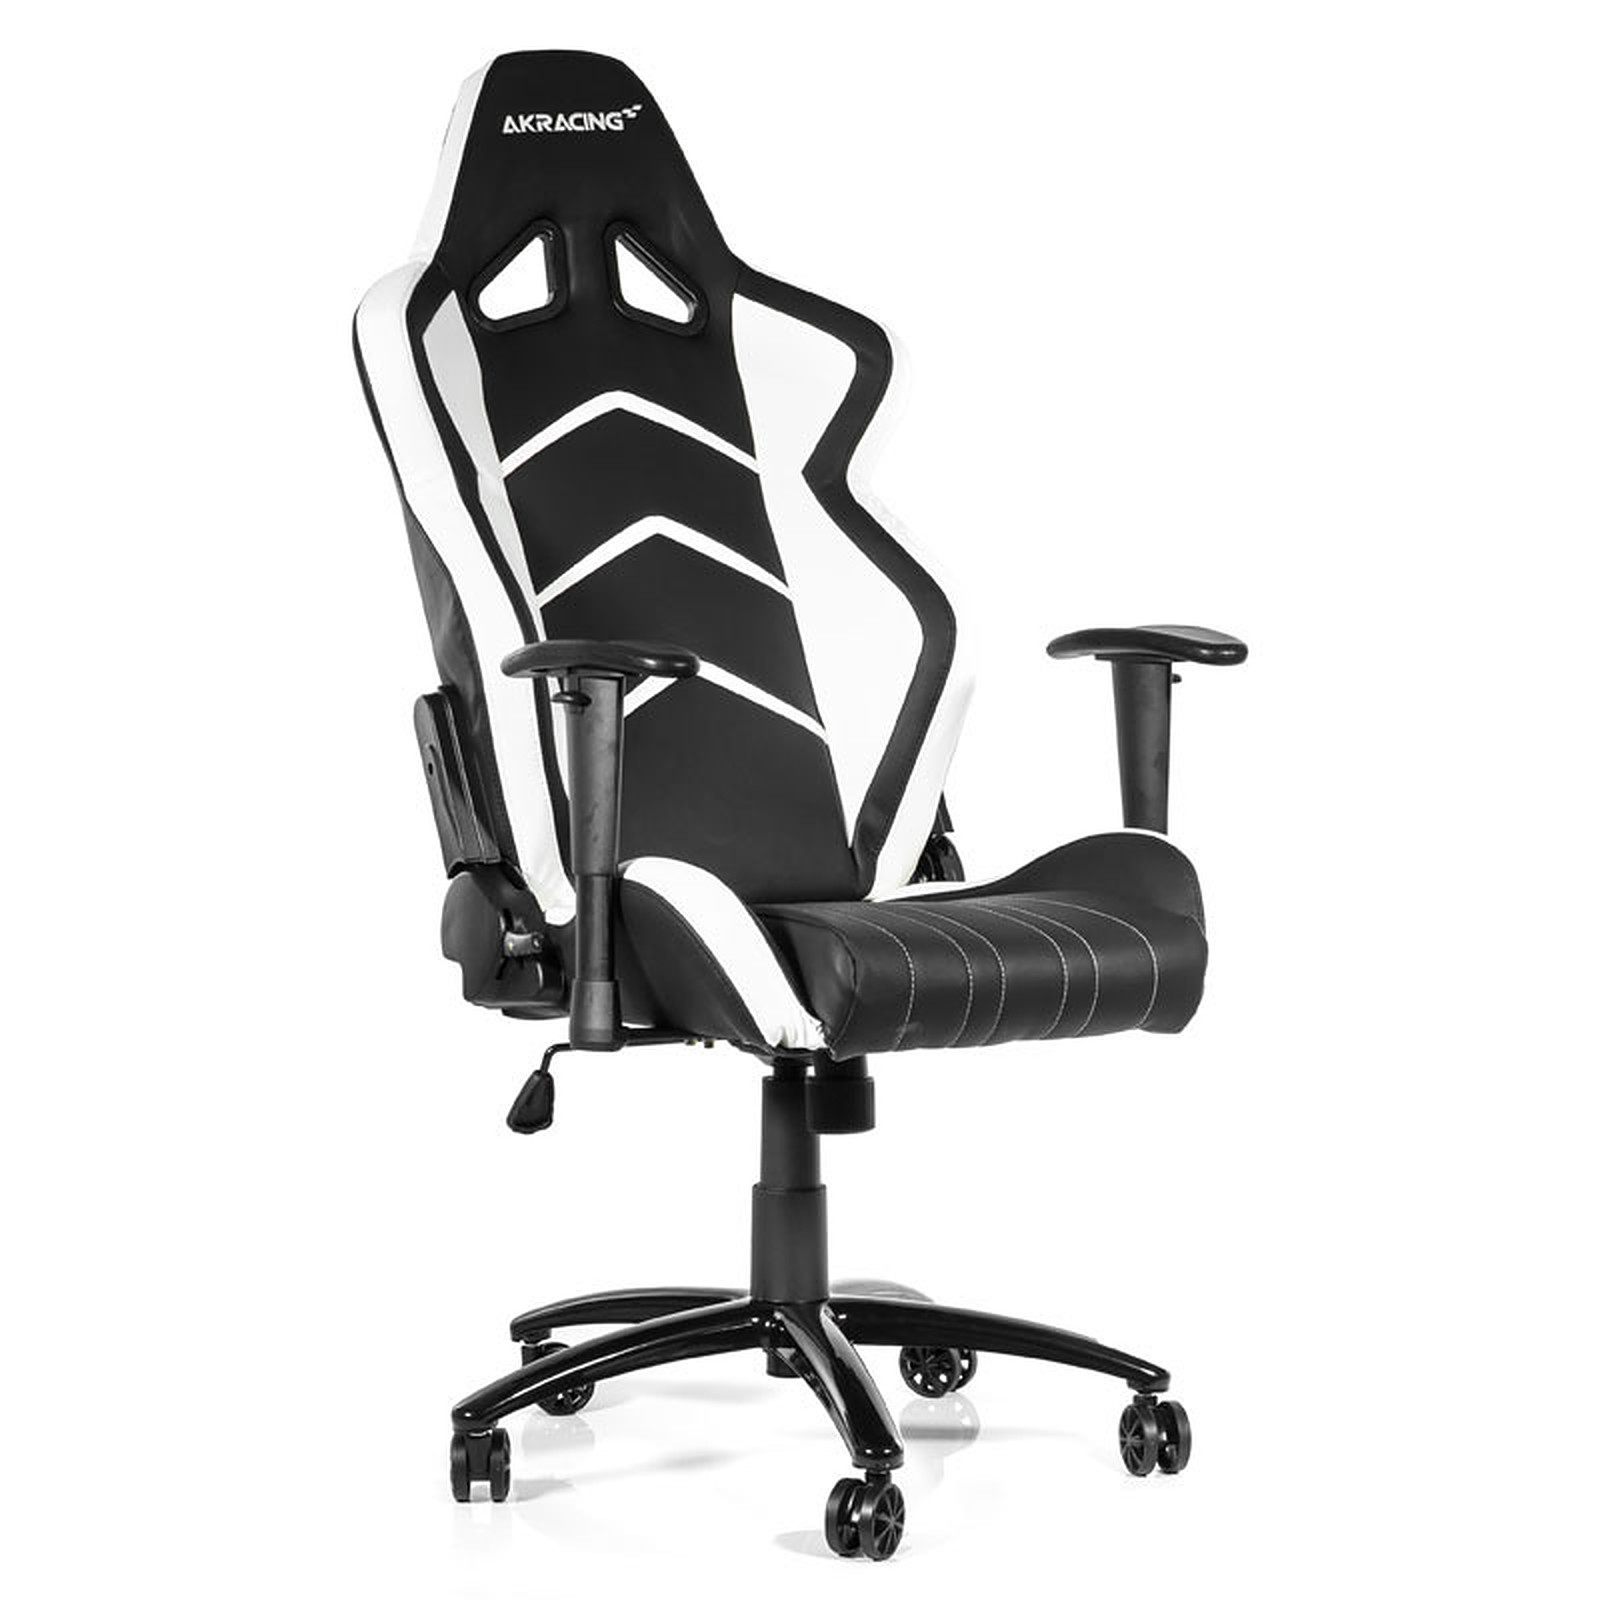 moins cher 816ba 71b86 AKRacing Player Gaming Chair (blanc) - Fauteuil gamer ...